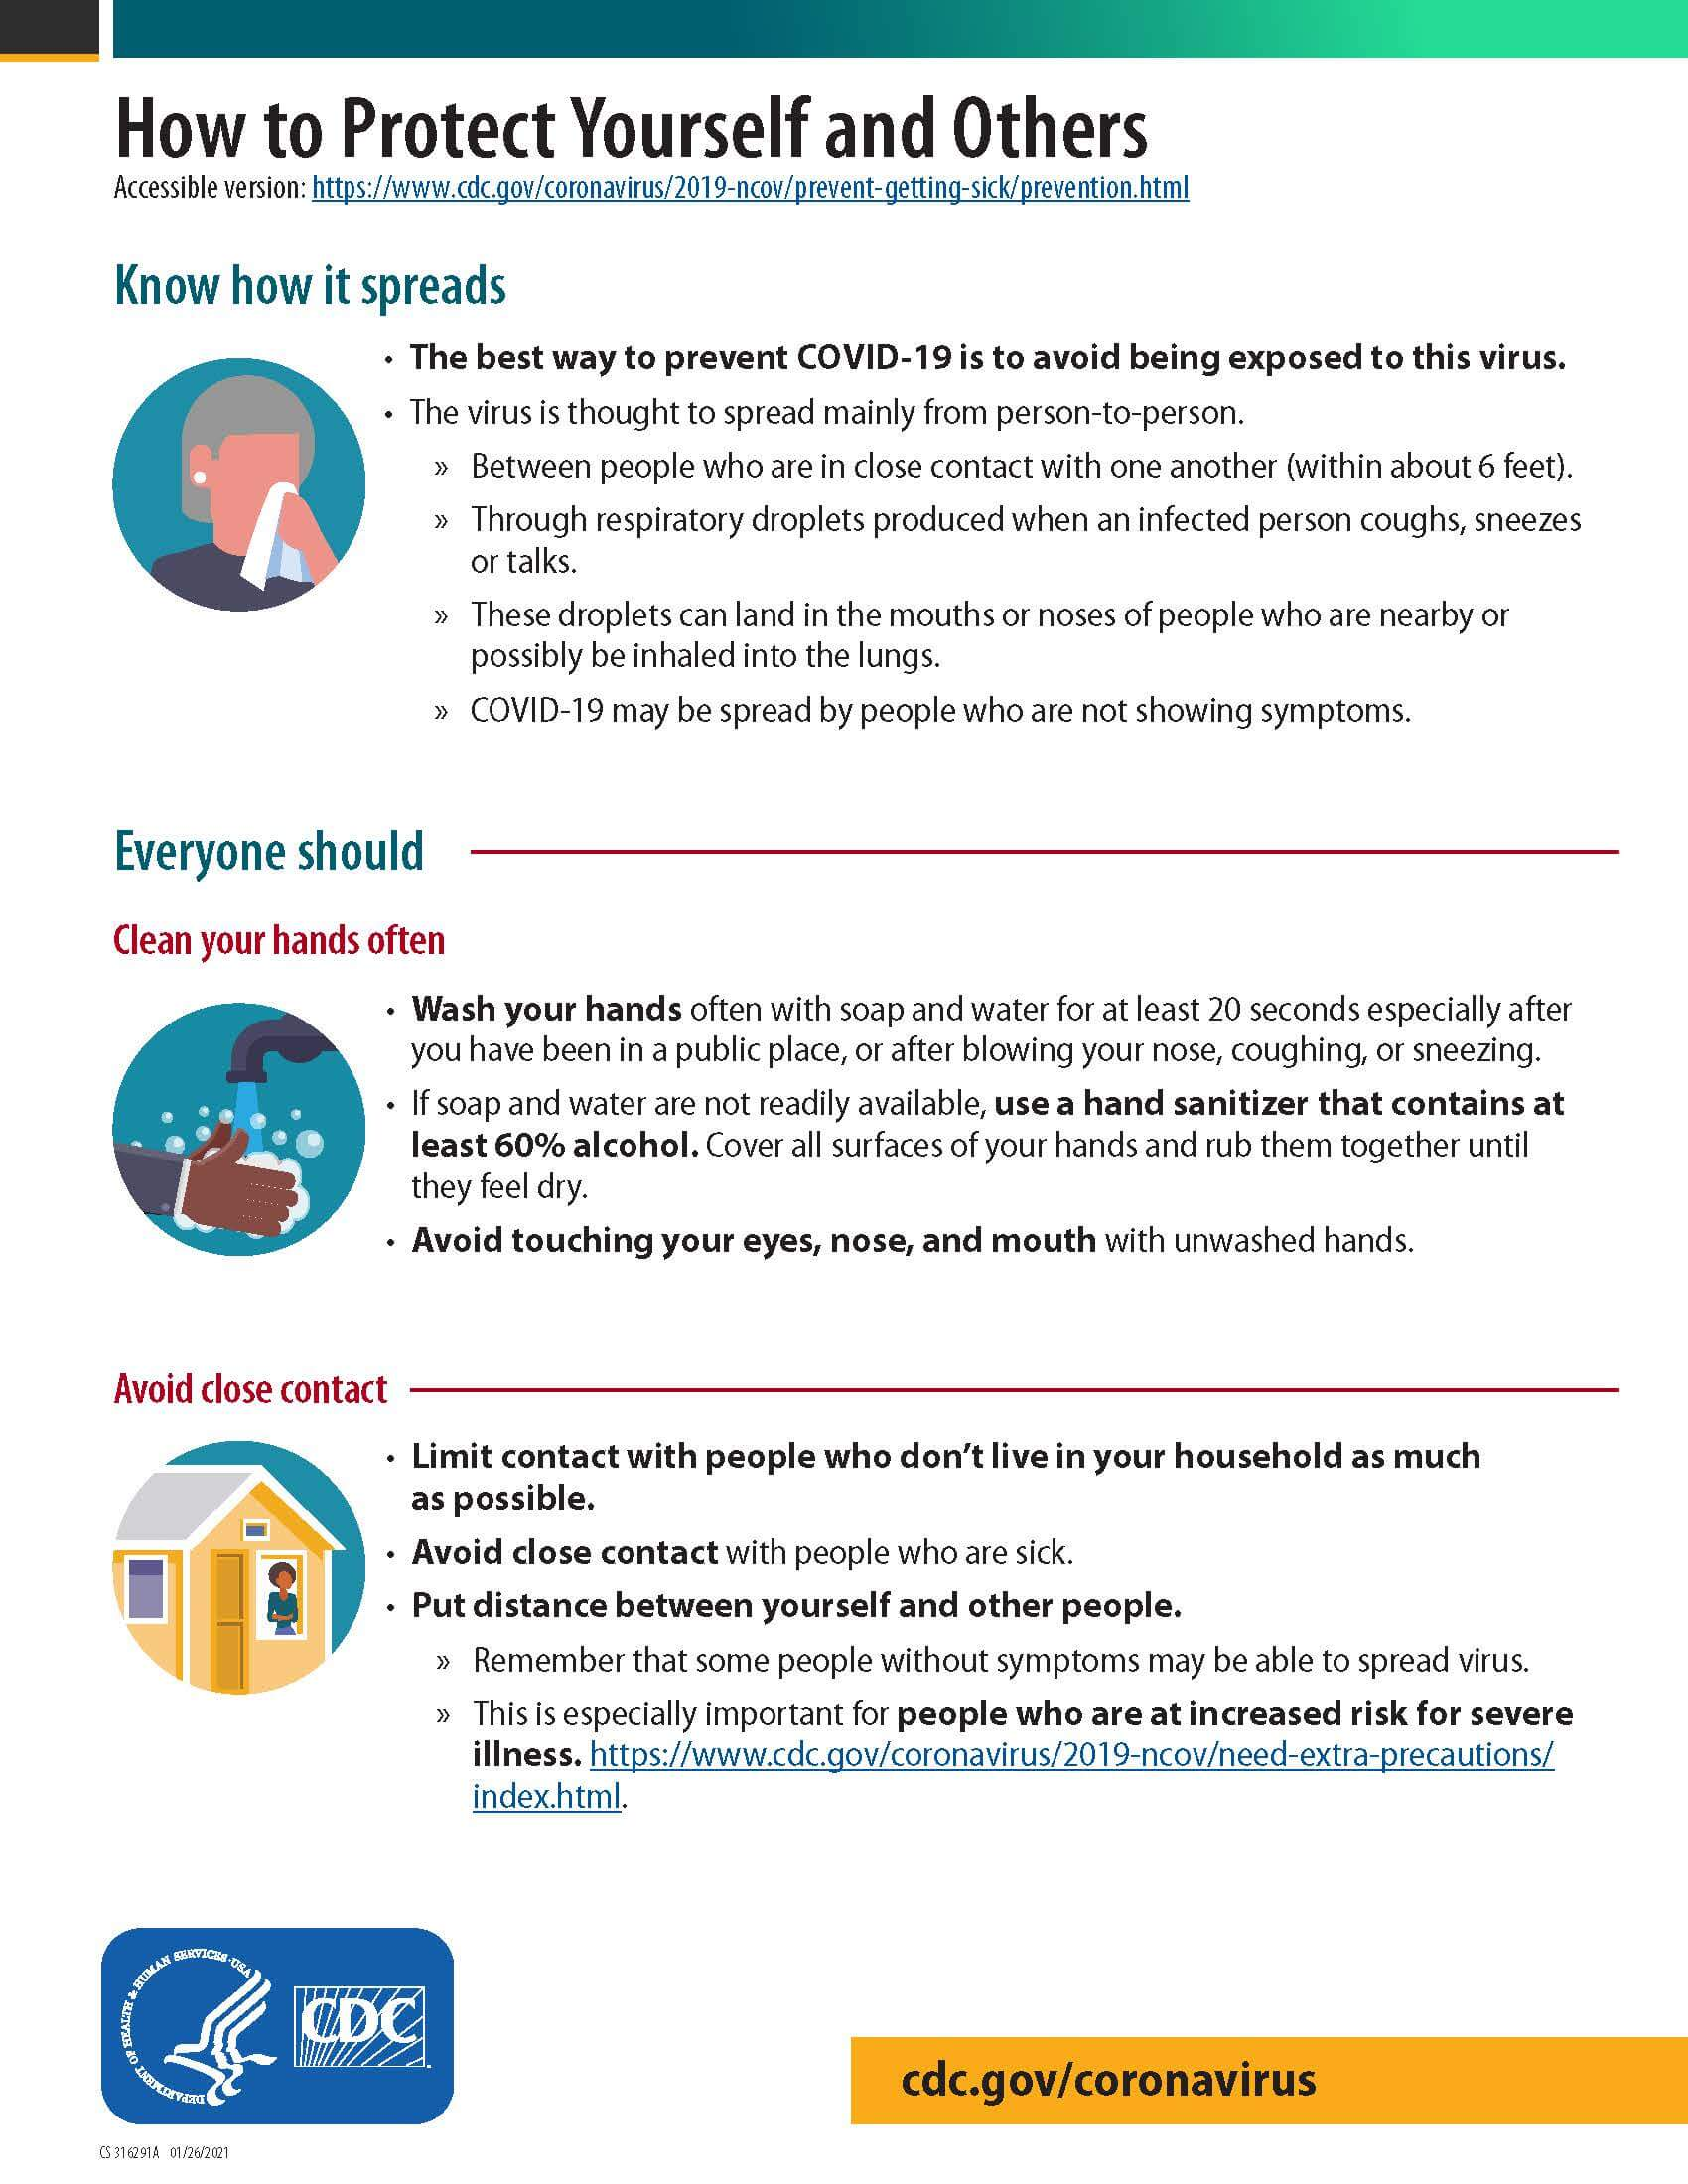 How to Protect Yourself and Others from covid page1